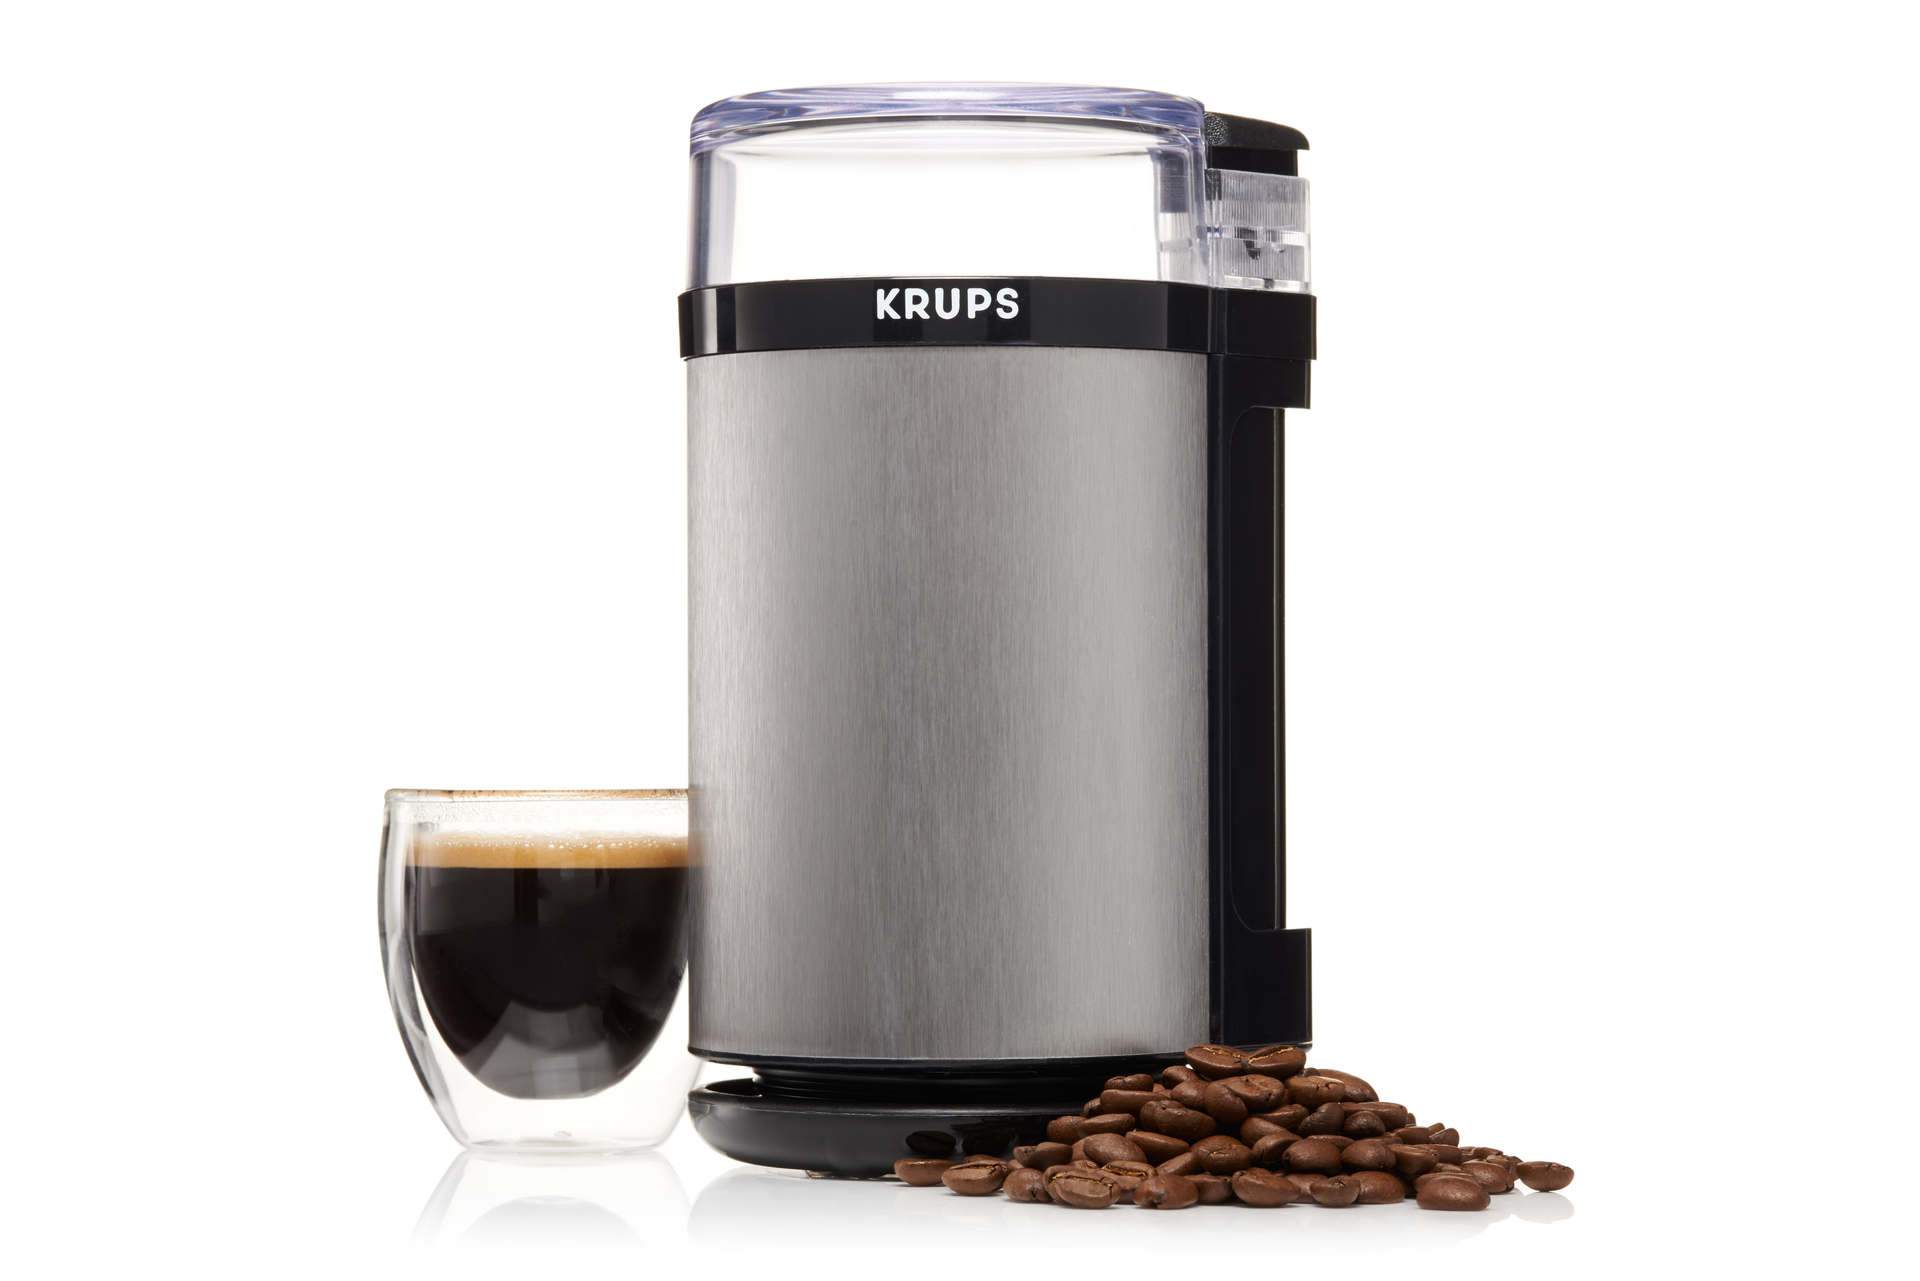 Krups Electric Spice Herbs And Coffee Grinder Target